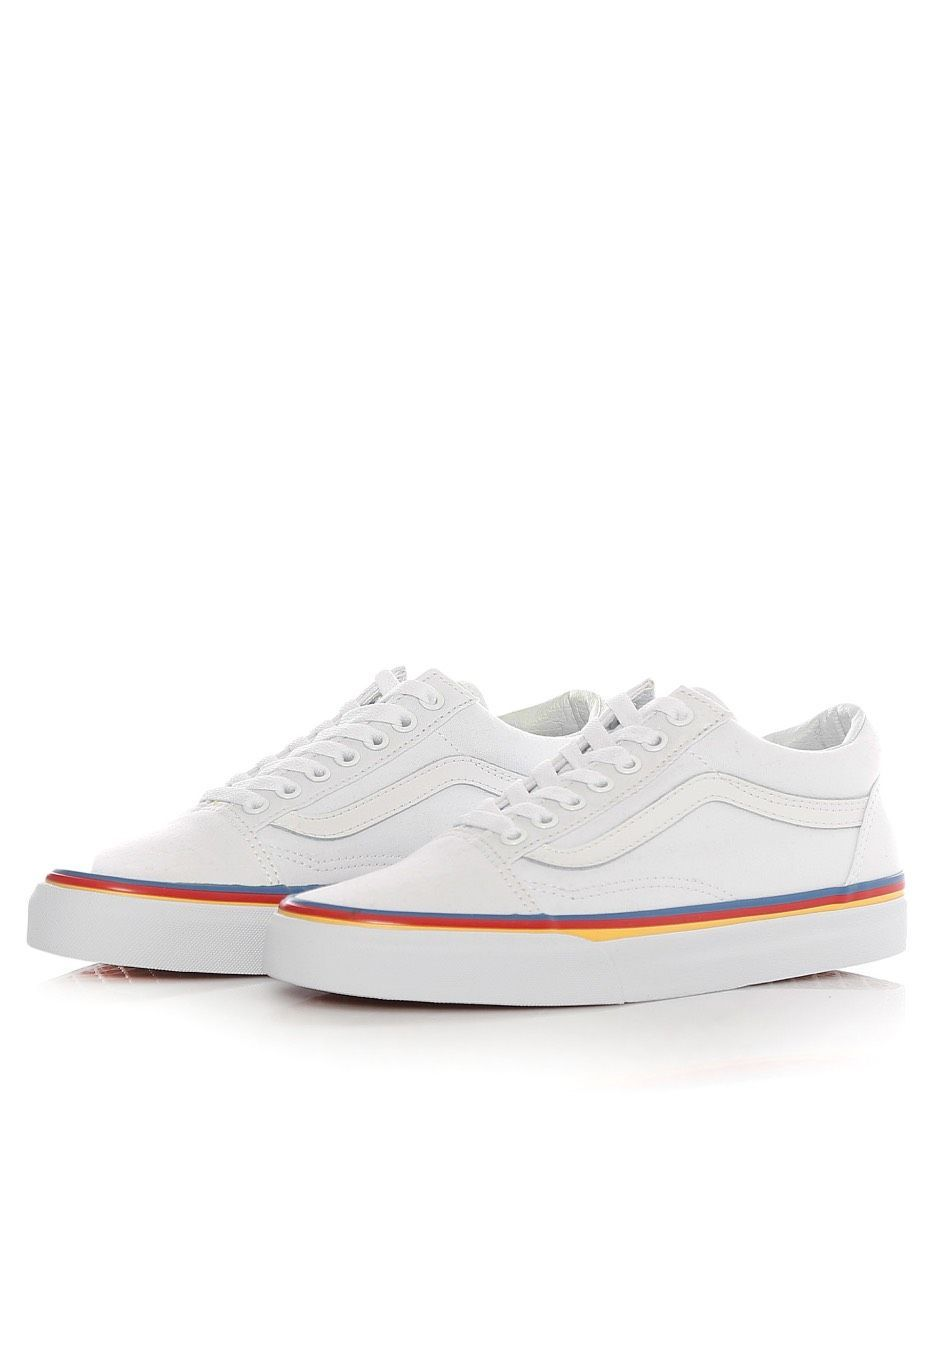 vans old skool rainbow